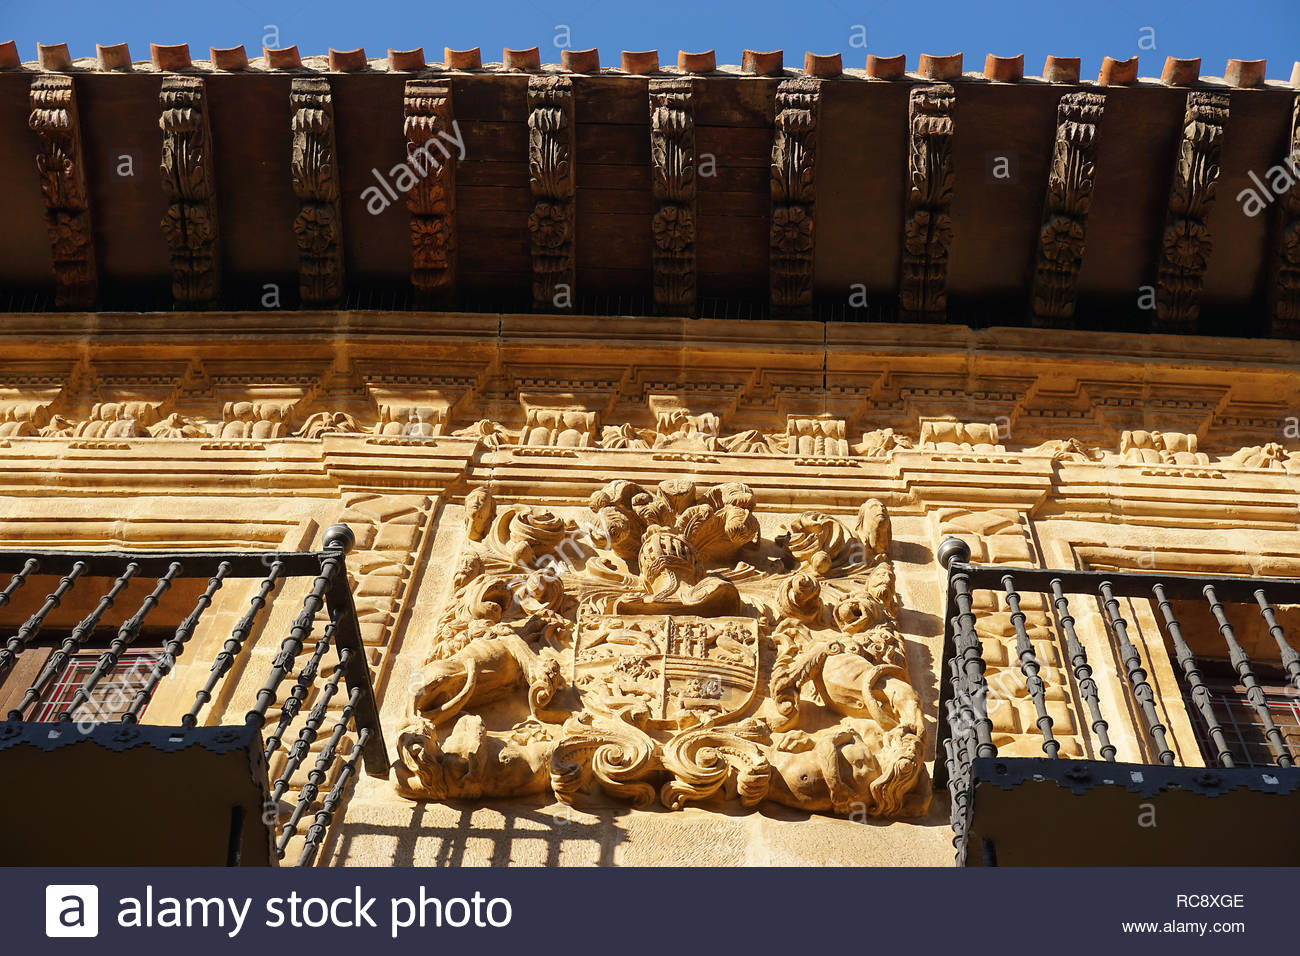 Artistic decorated balcony and facade of house in Labastida in basque country, spain - Stock Image